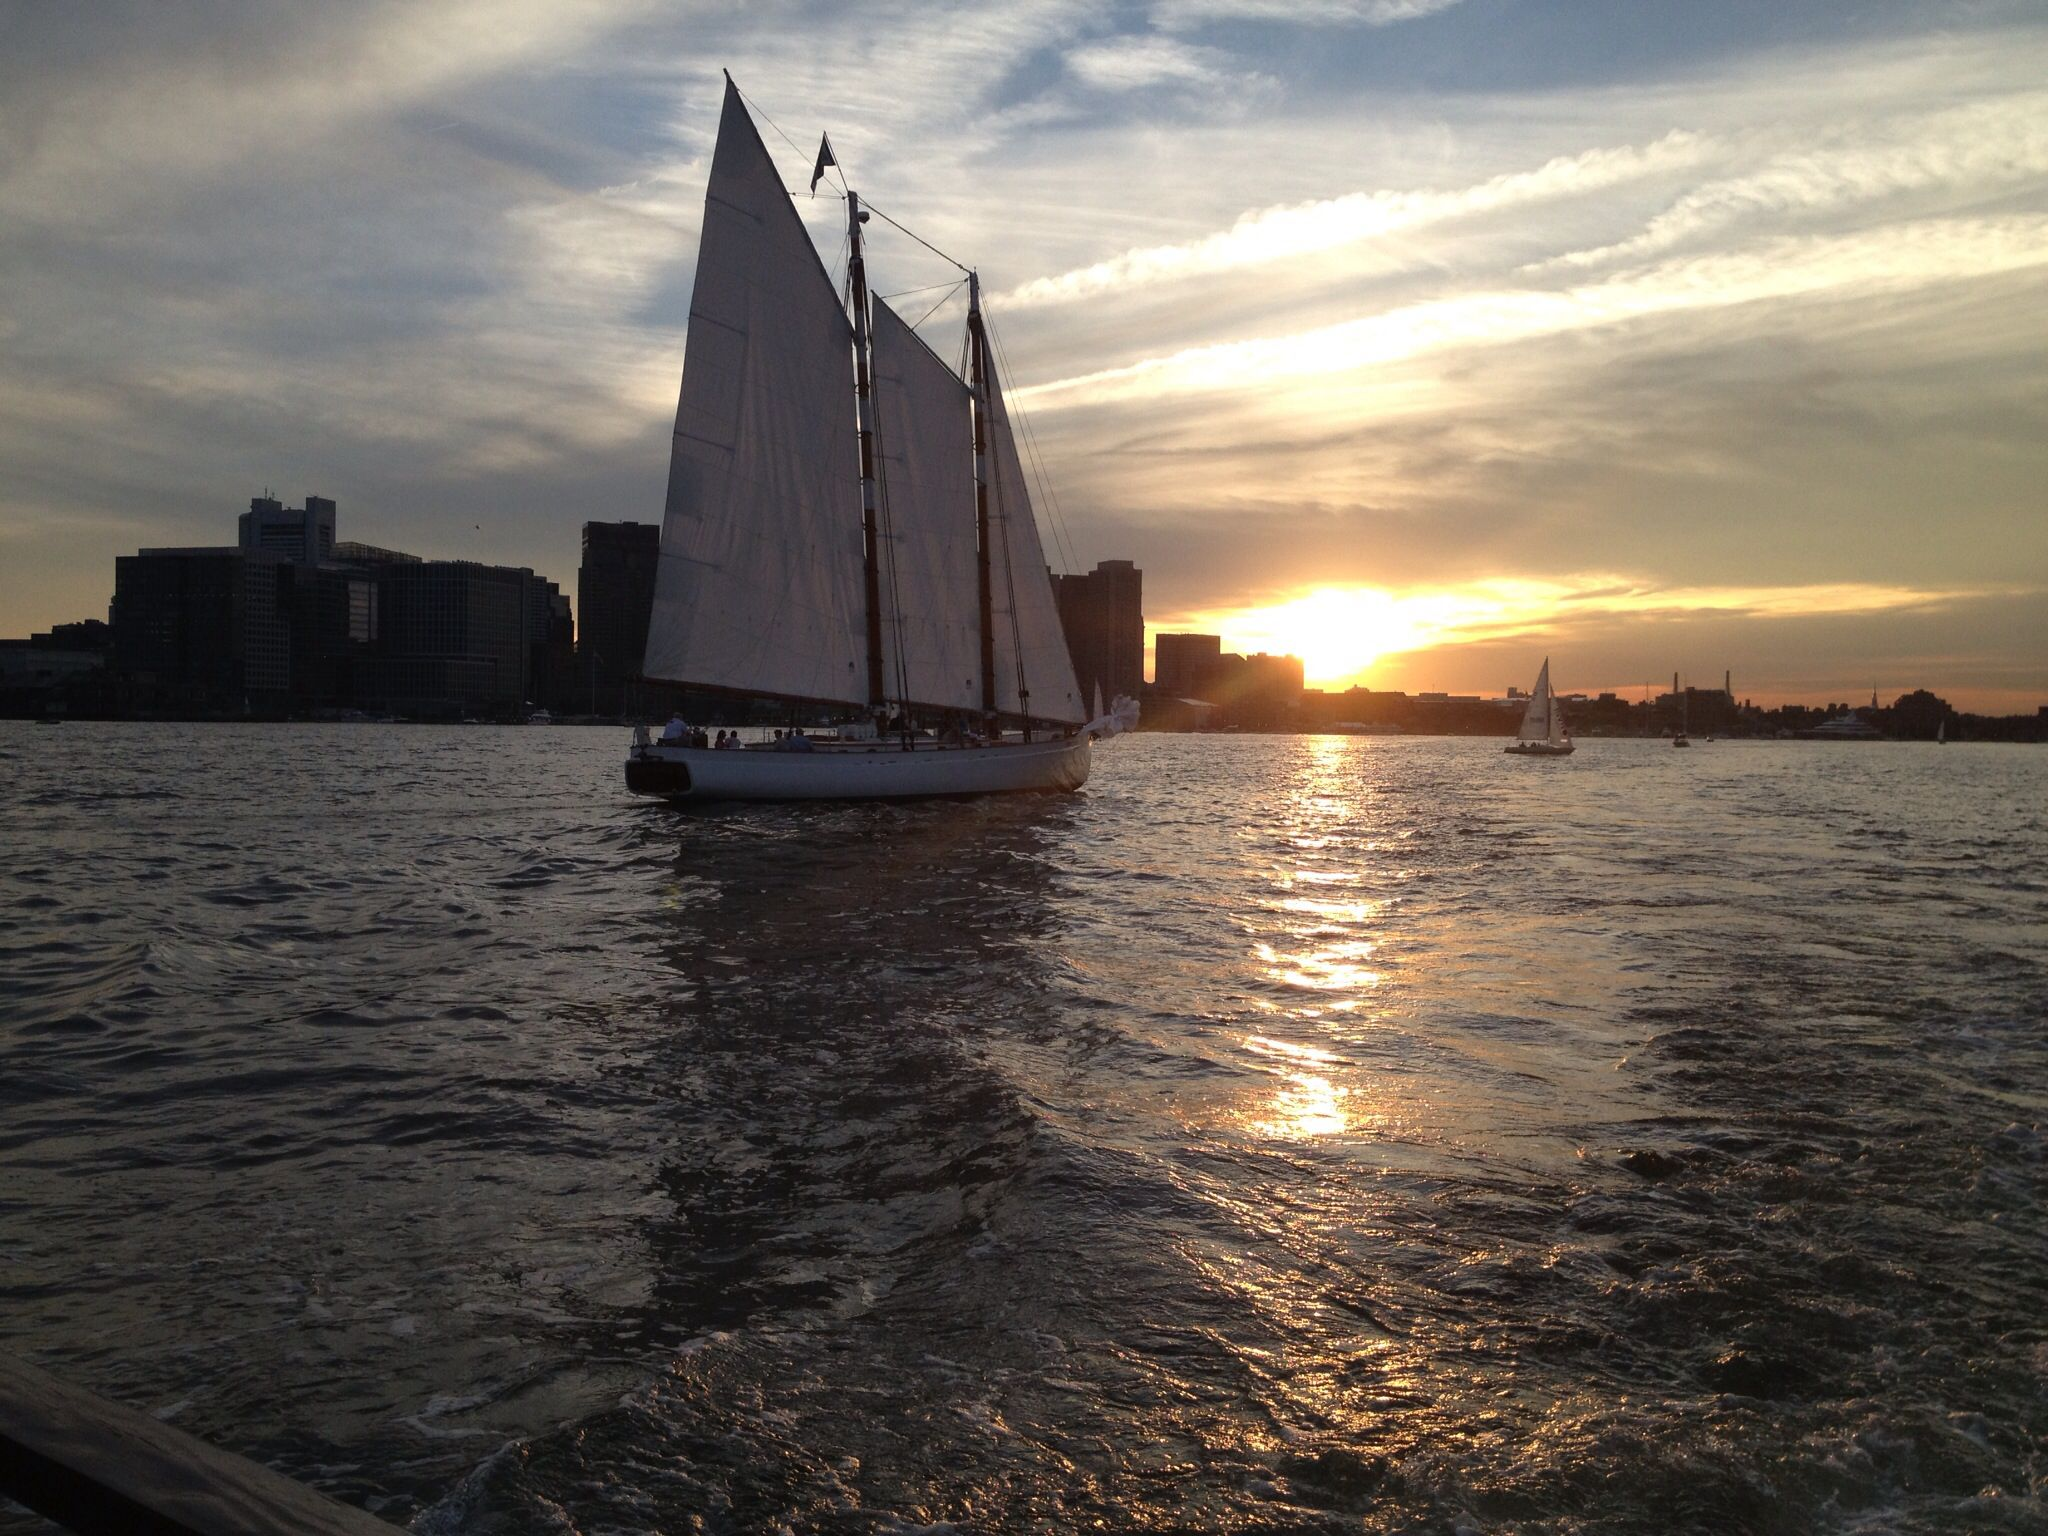 During summer evening cruise around Boston harbor.